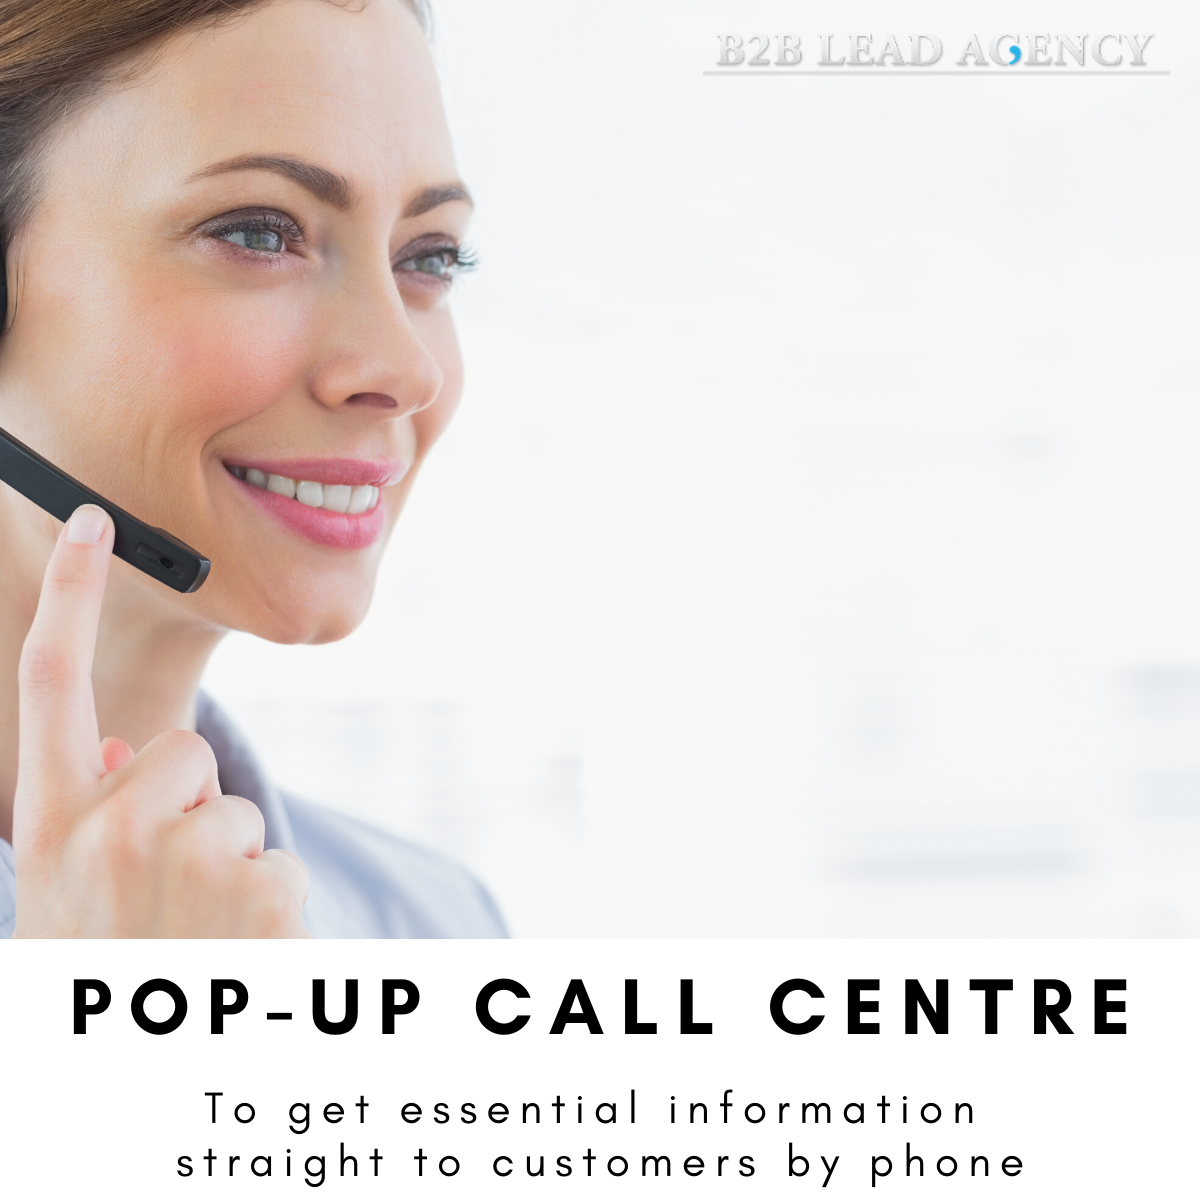 Pop-up Call Centre. To get essential information straight to customers by phone